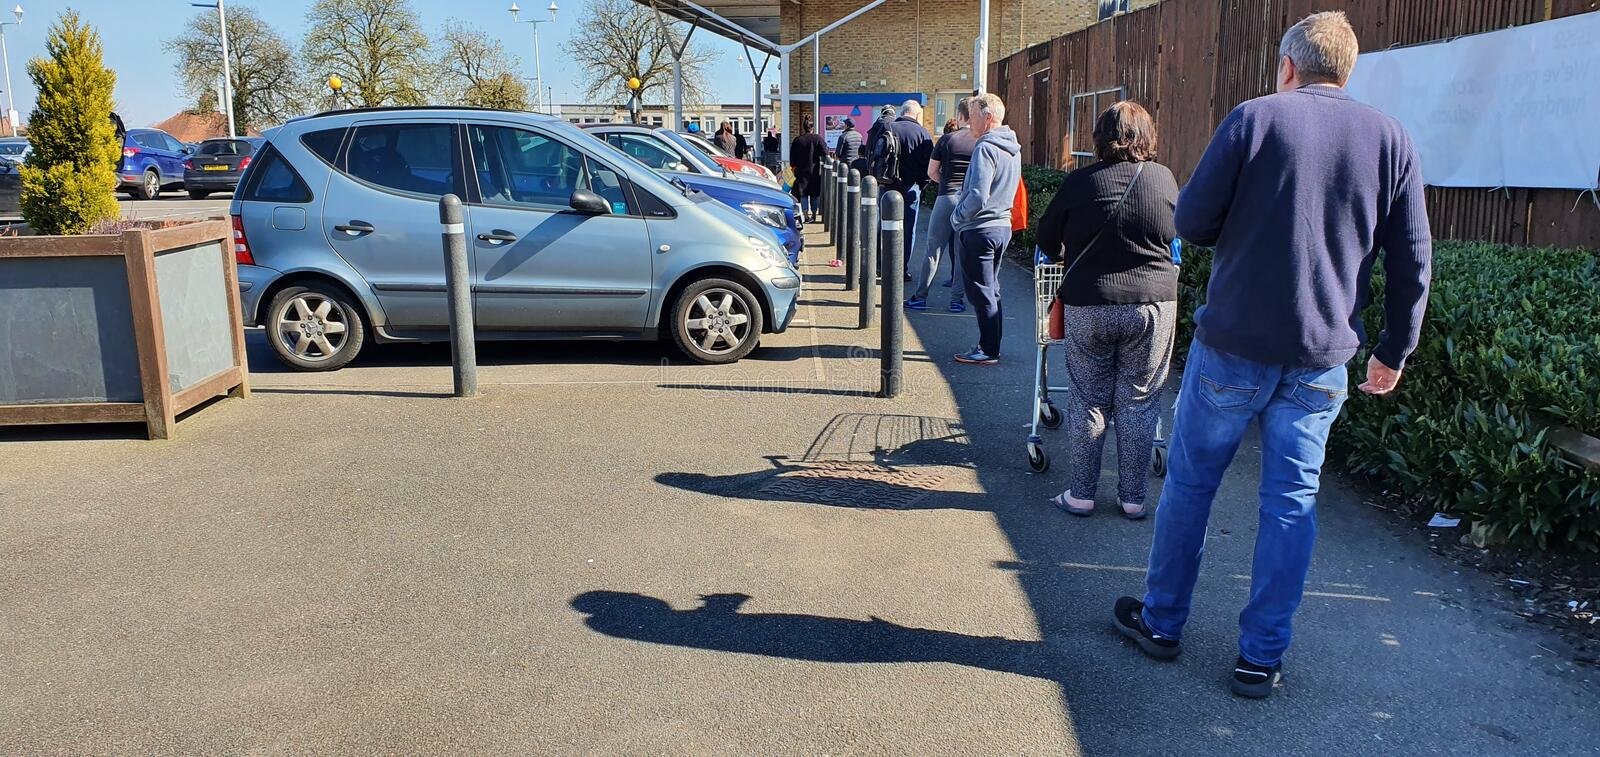 People queuing during coronavirus outbreak royalty free stock photo